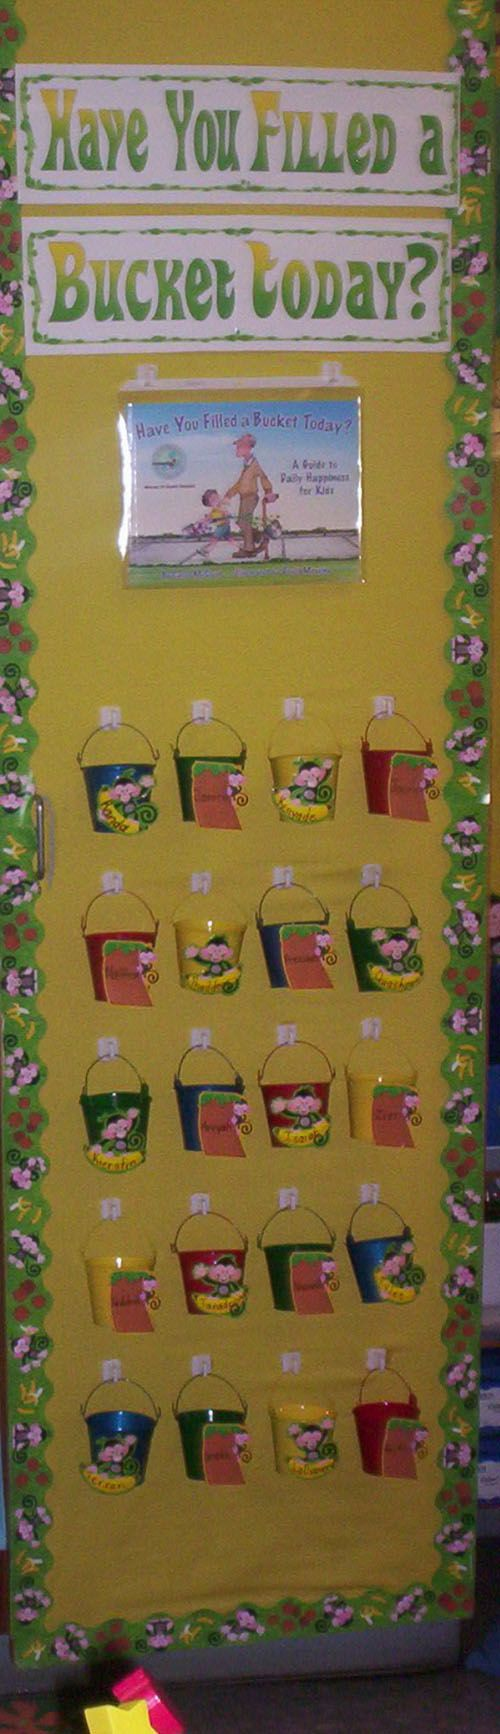 [Bucket Filling]Classroom - Lessons, Ideas, and Printables: Classroom Idea, Bucket Filler Book, Bucket Filler Lesson, Classroom Reward, Bulletin Boards, Bucket Fillers, Bucket Filler Printable, Bucket Filling Lesson